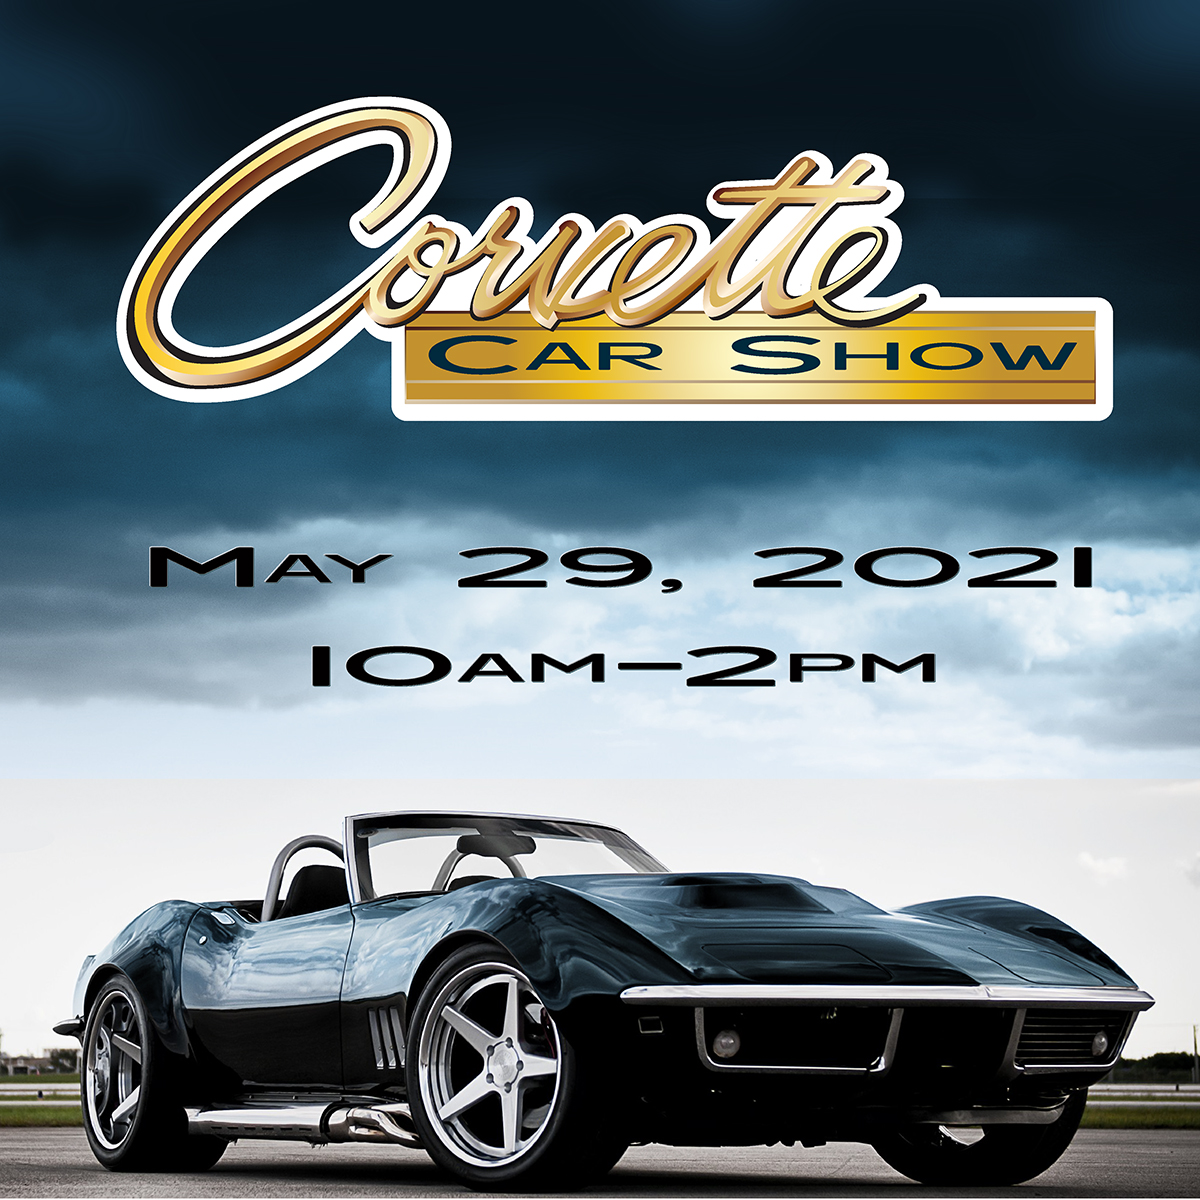 Corvette Show at the ADM